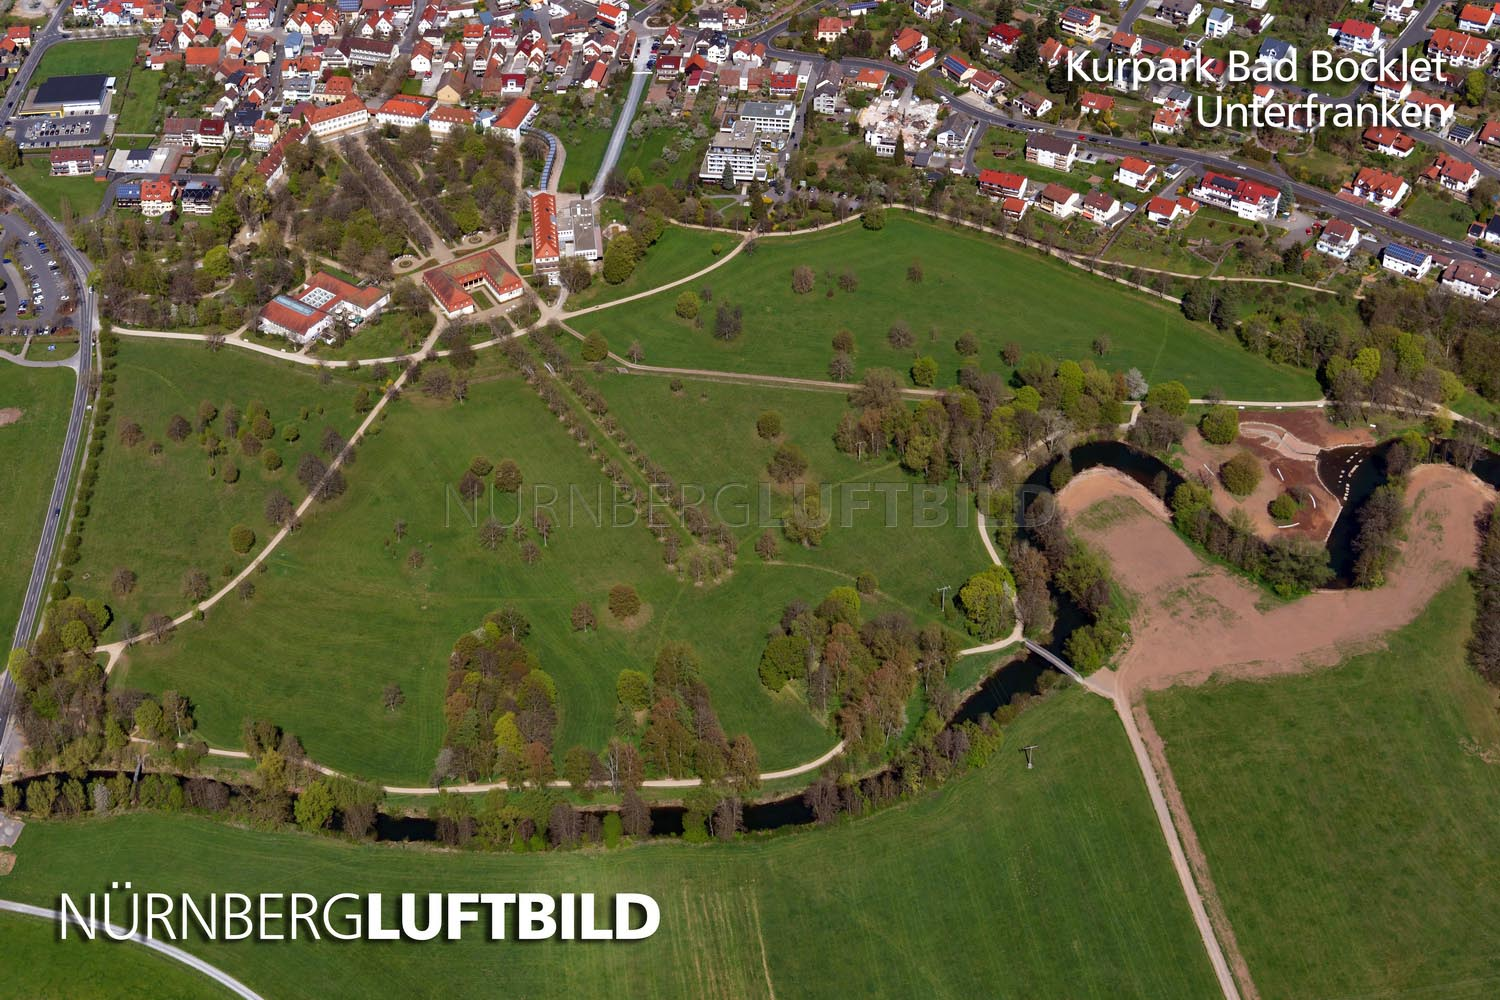 Kurpark Bad Bocklet, Unterfranken